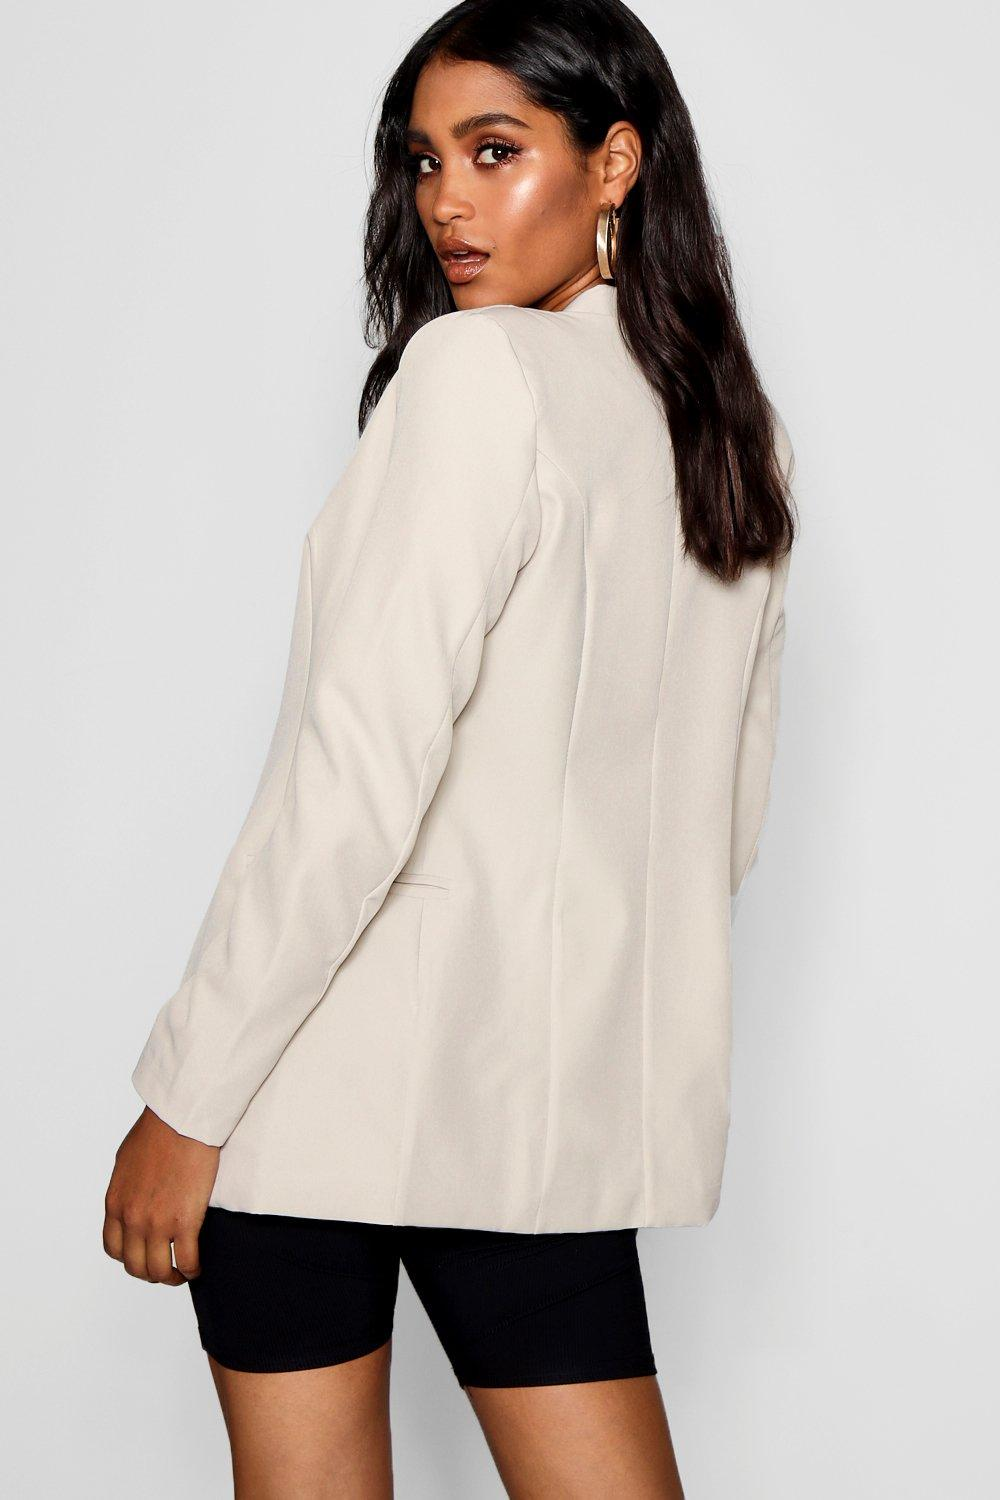 Shaped Collarless Blazer Collarless Blazer Shaped white 1TTqw5x